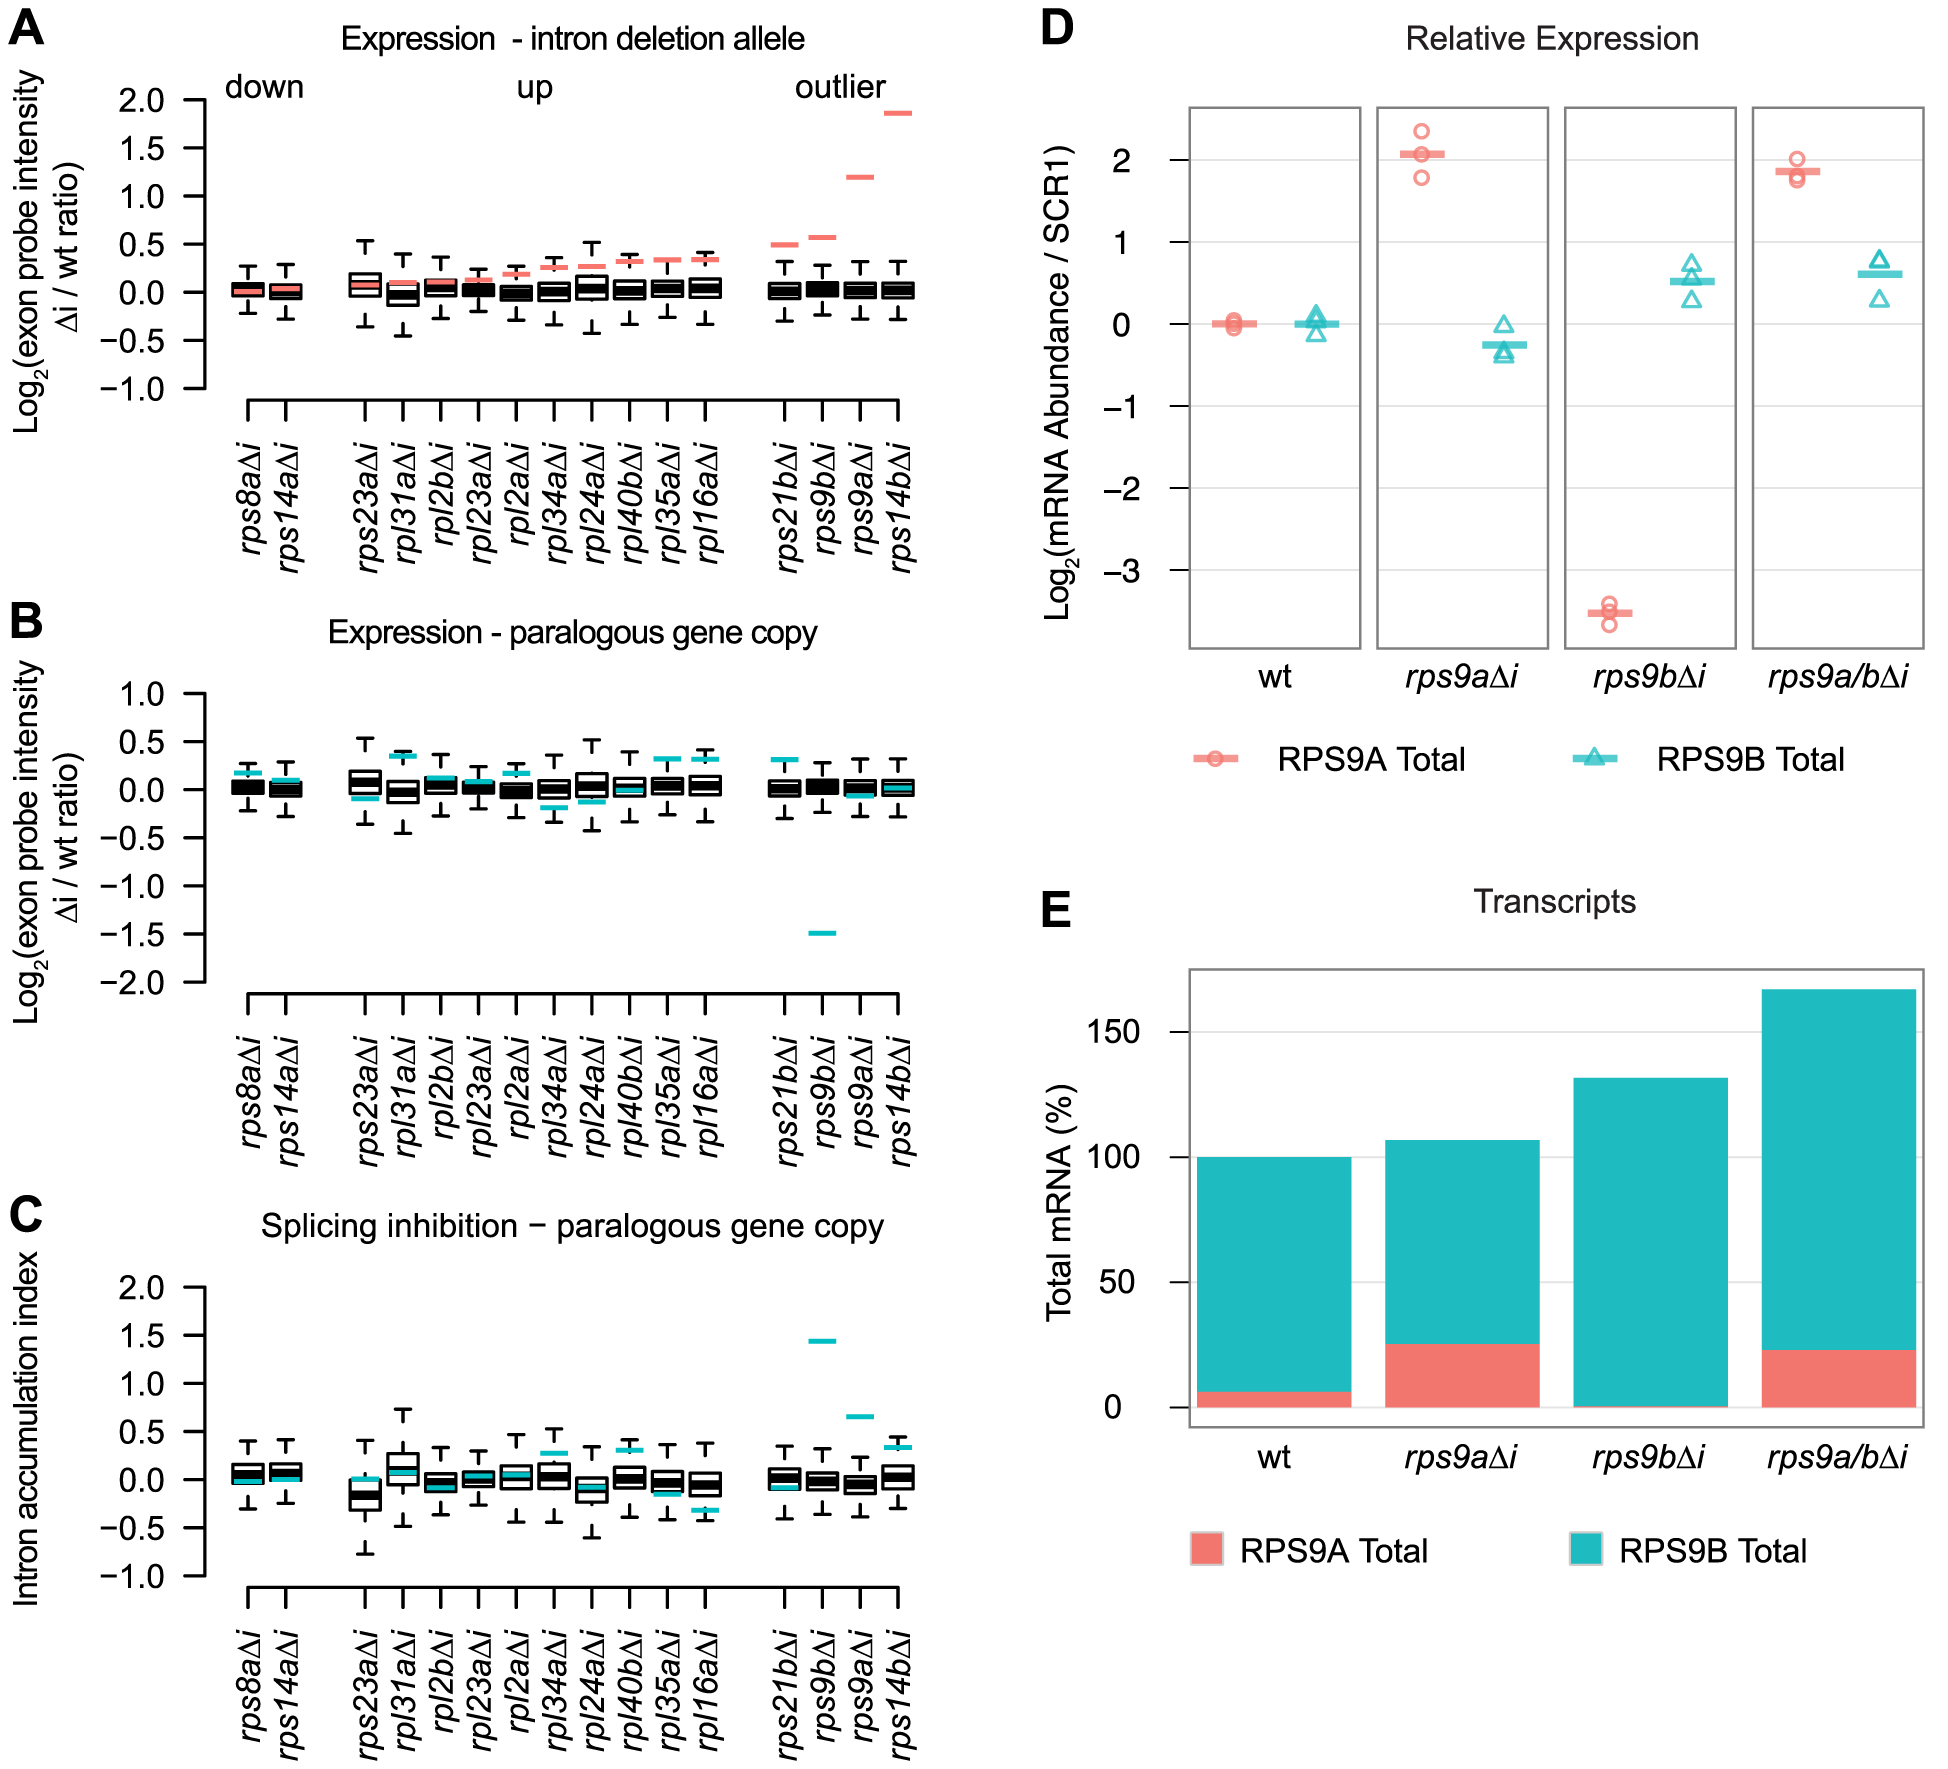 RPG intron deletions reveal gene-specific effects on steady-state mRNA levels.